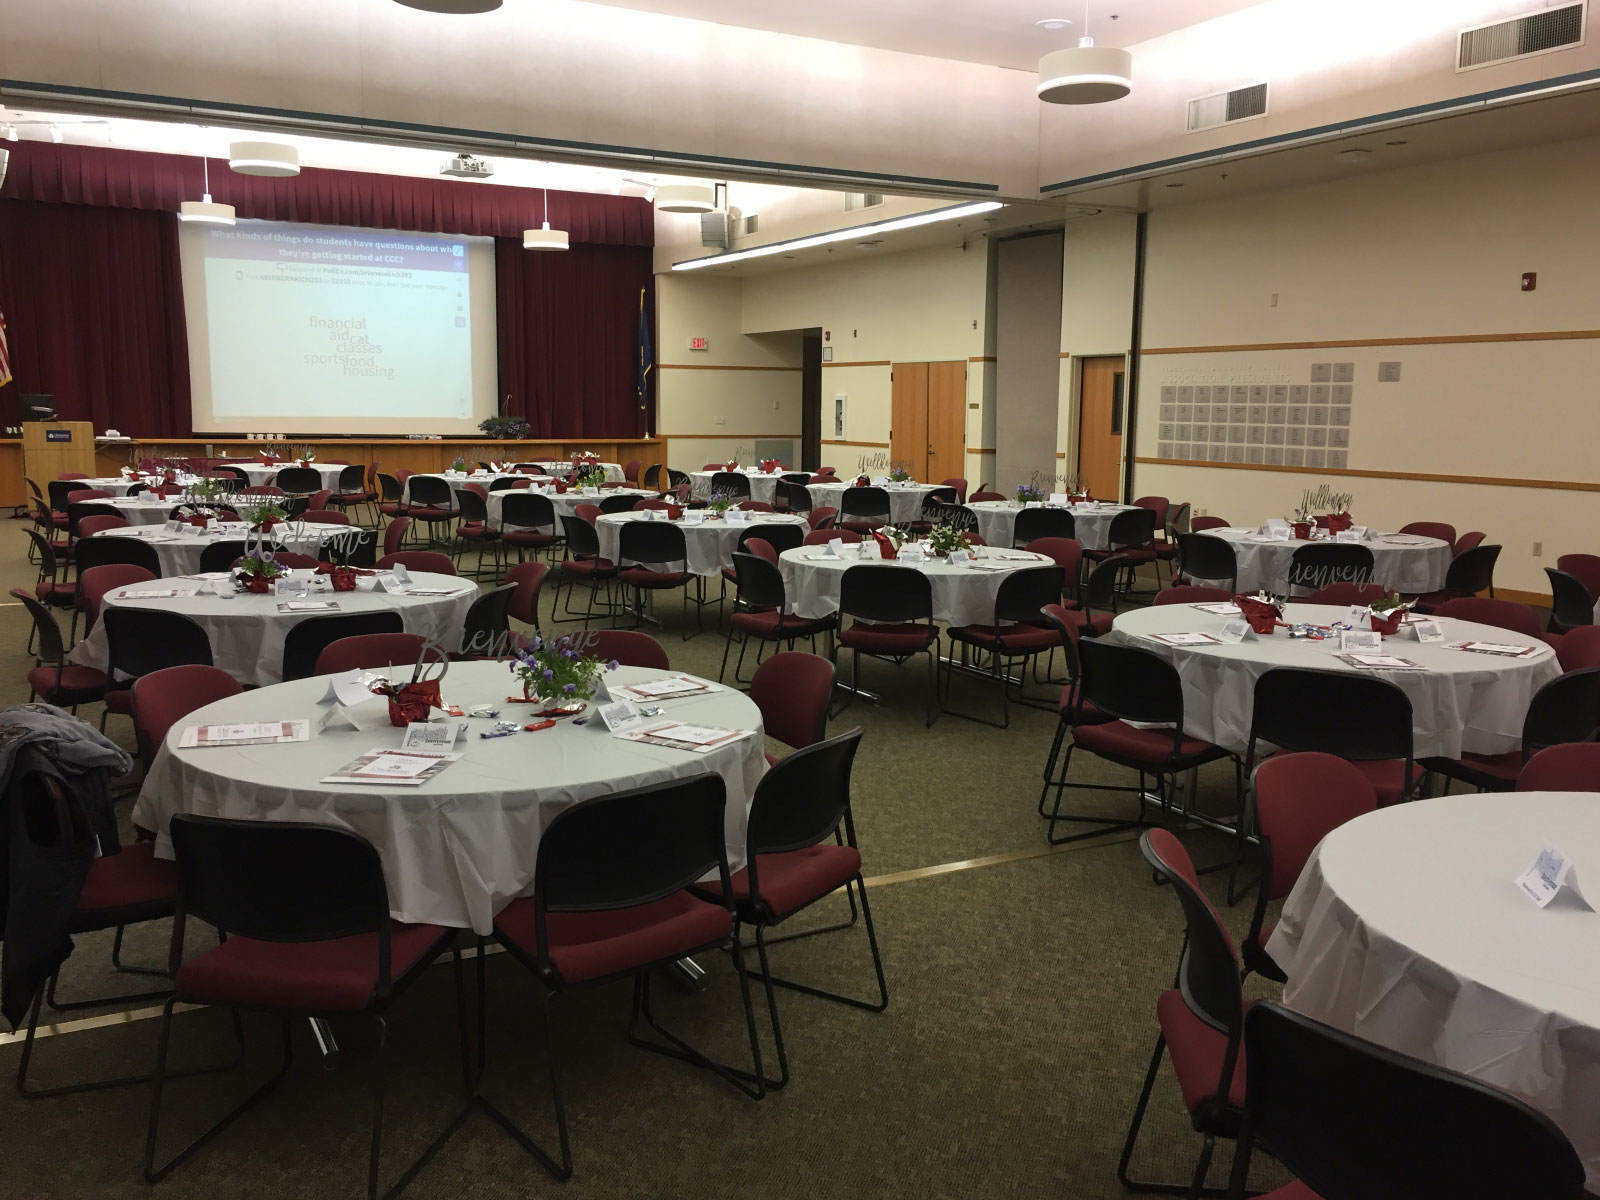 Many tables with red chairs, table centerpieces and silverware with a projector screen at the front of the room